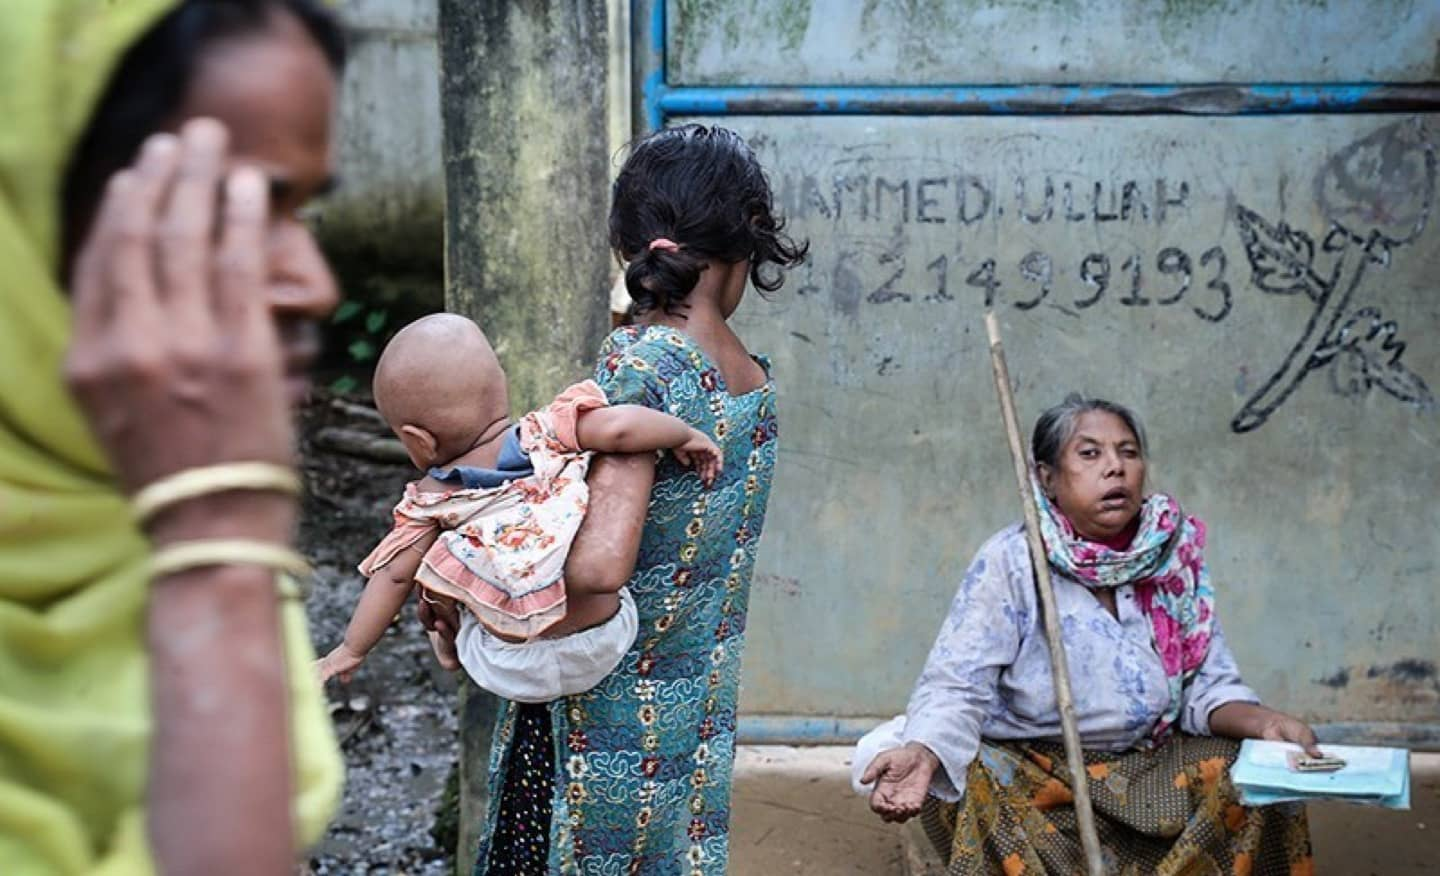 rohingya_displaced_muslims_022